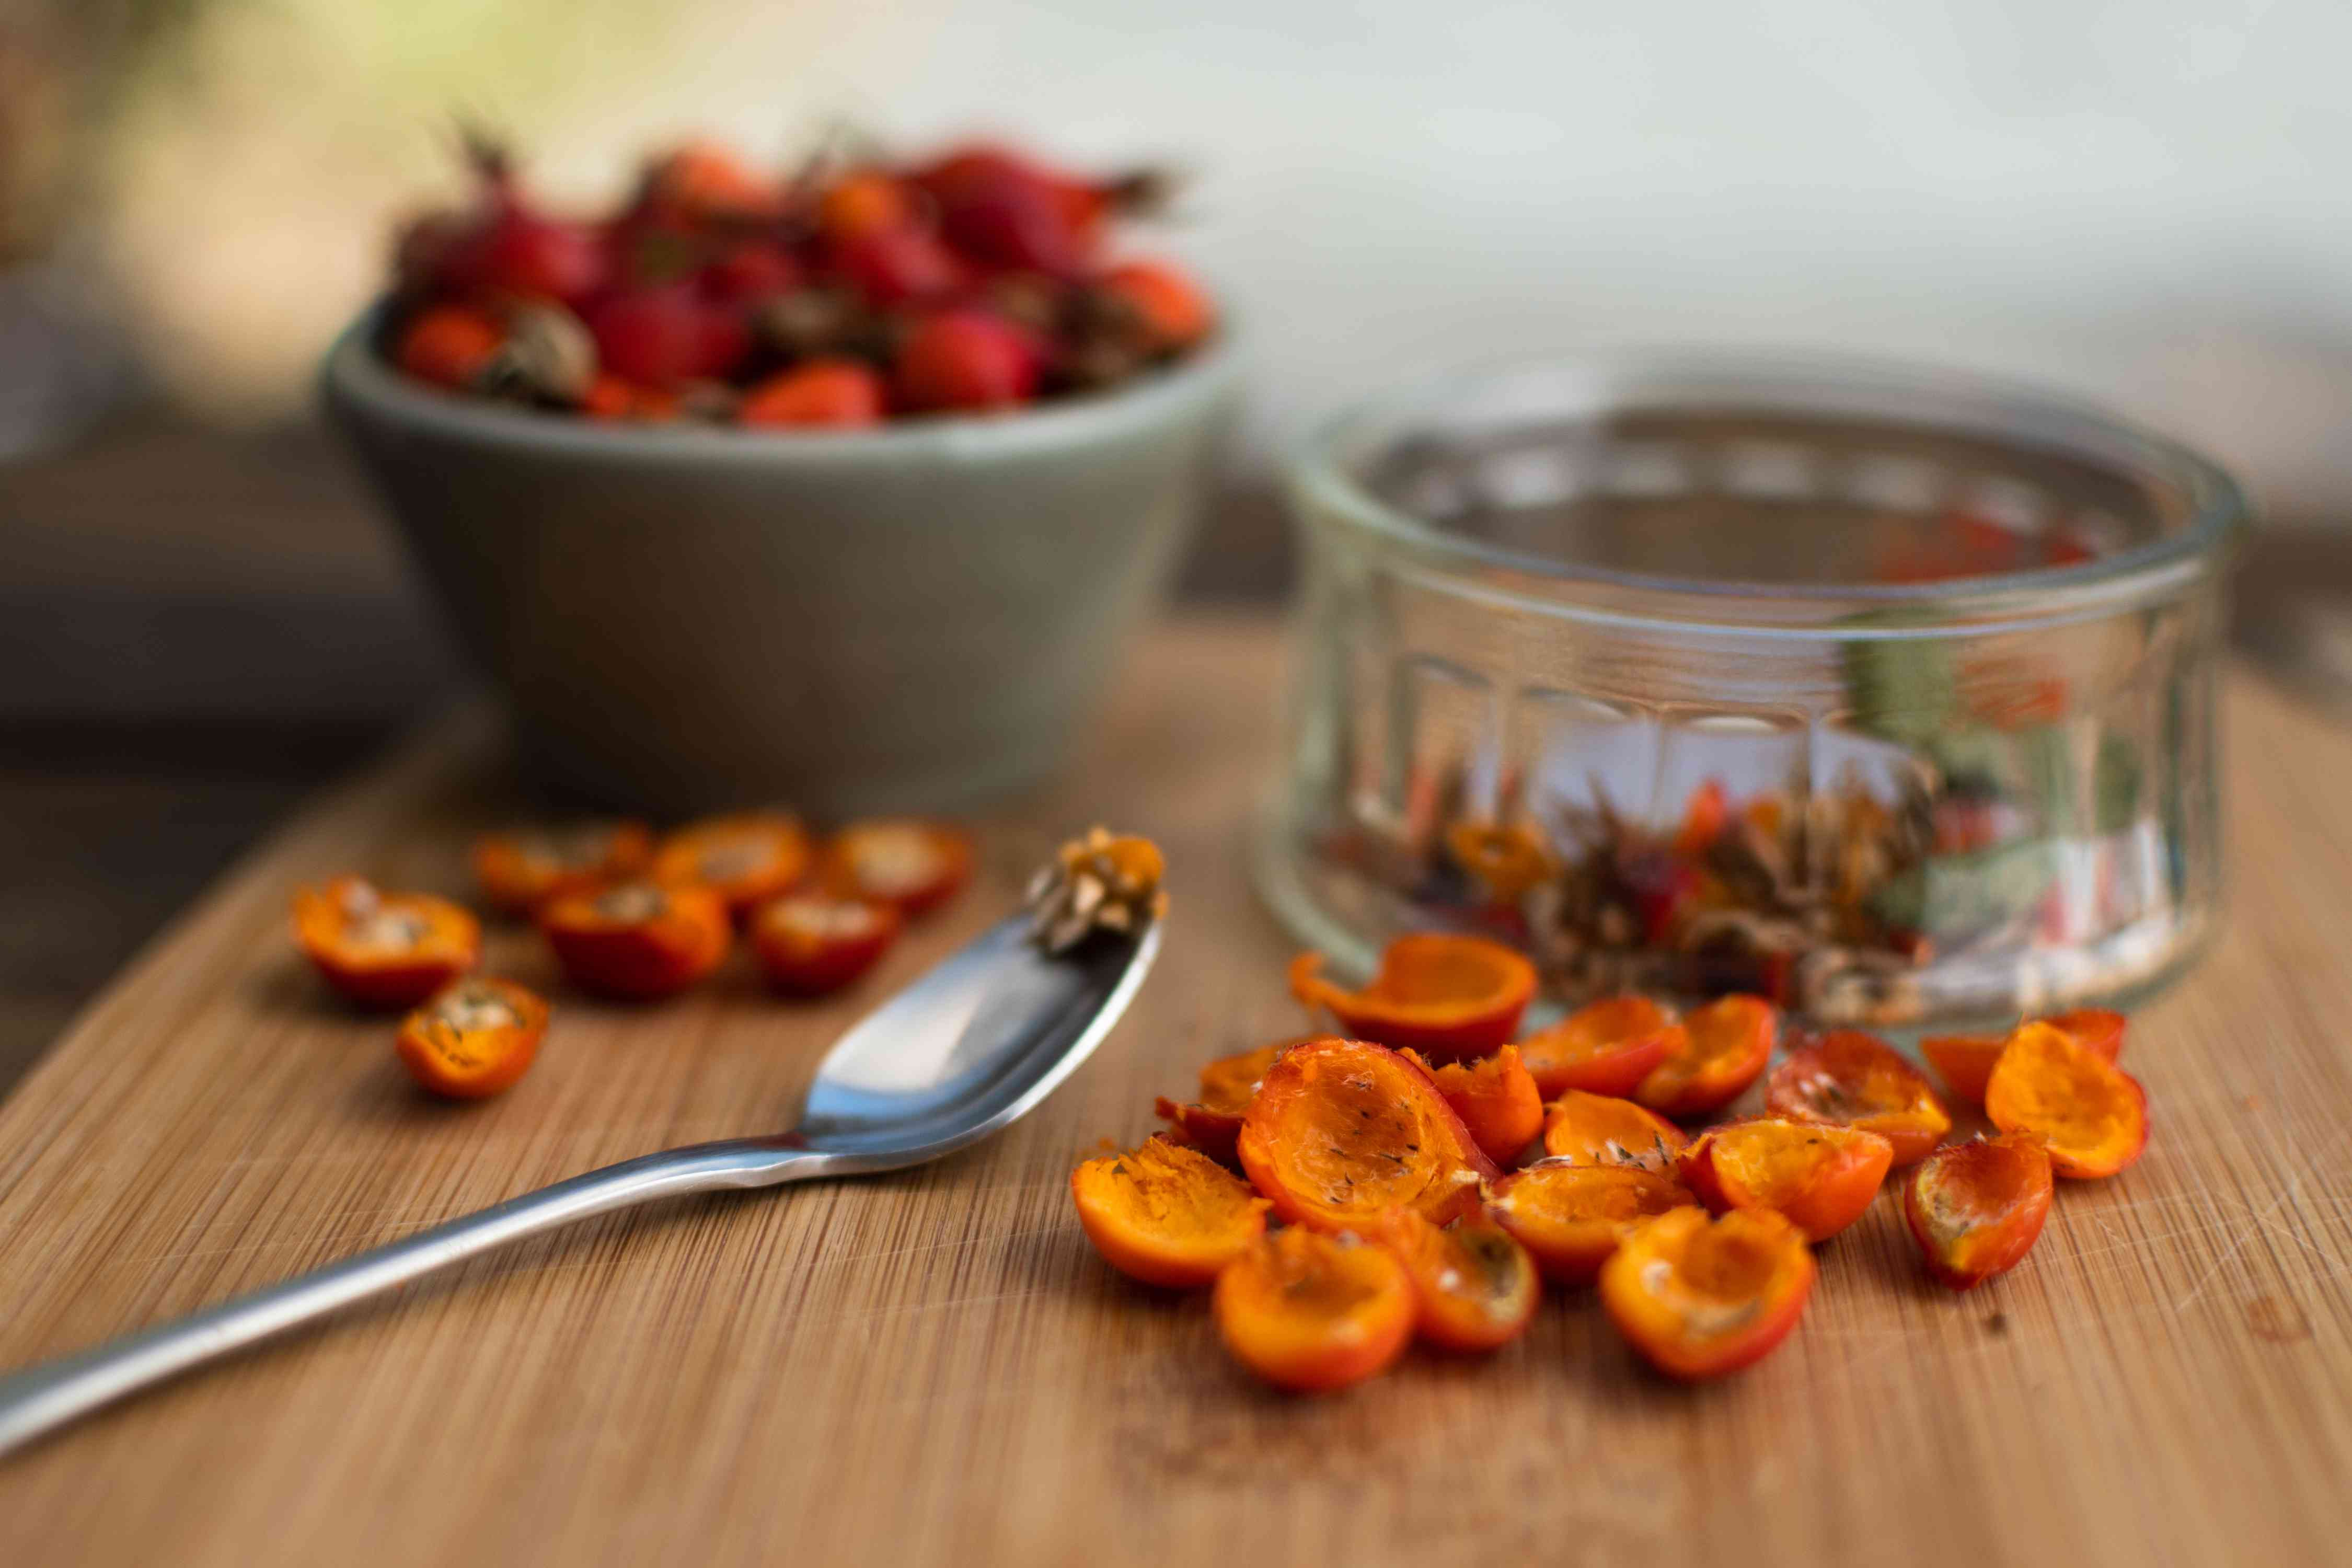 Seeds removed with spoon from inside harvested rose hips